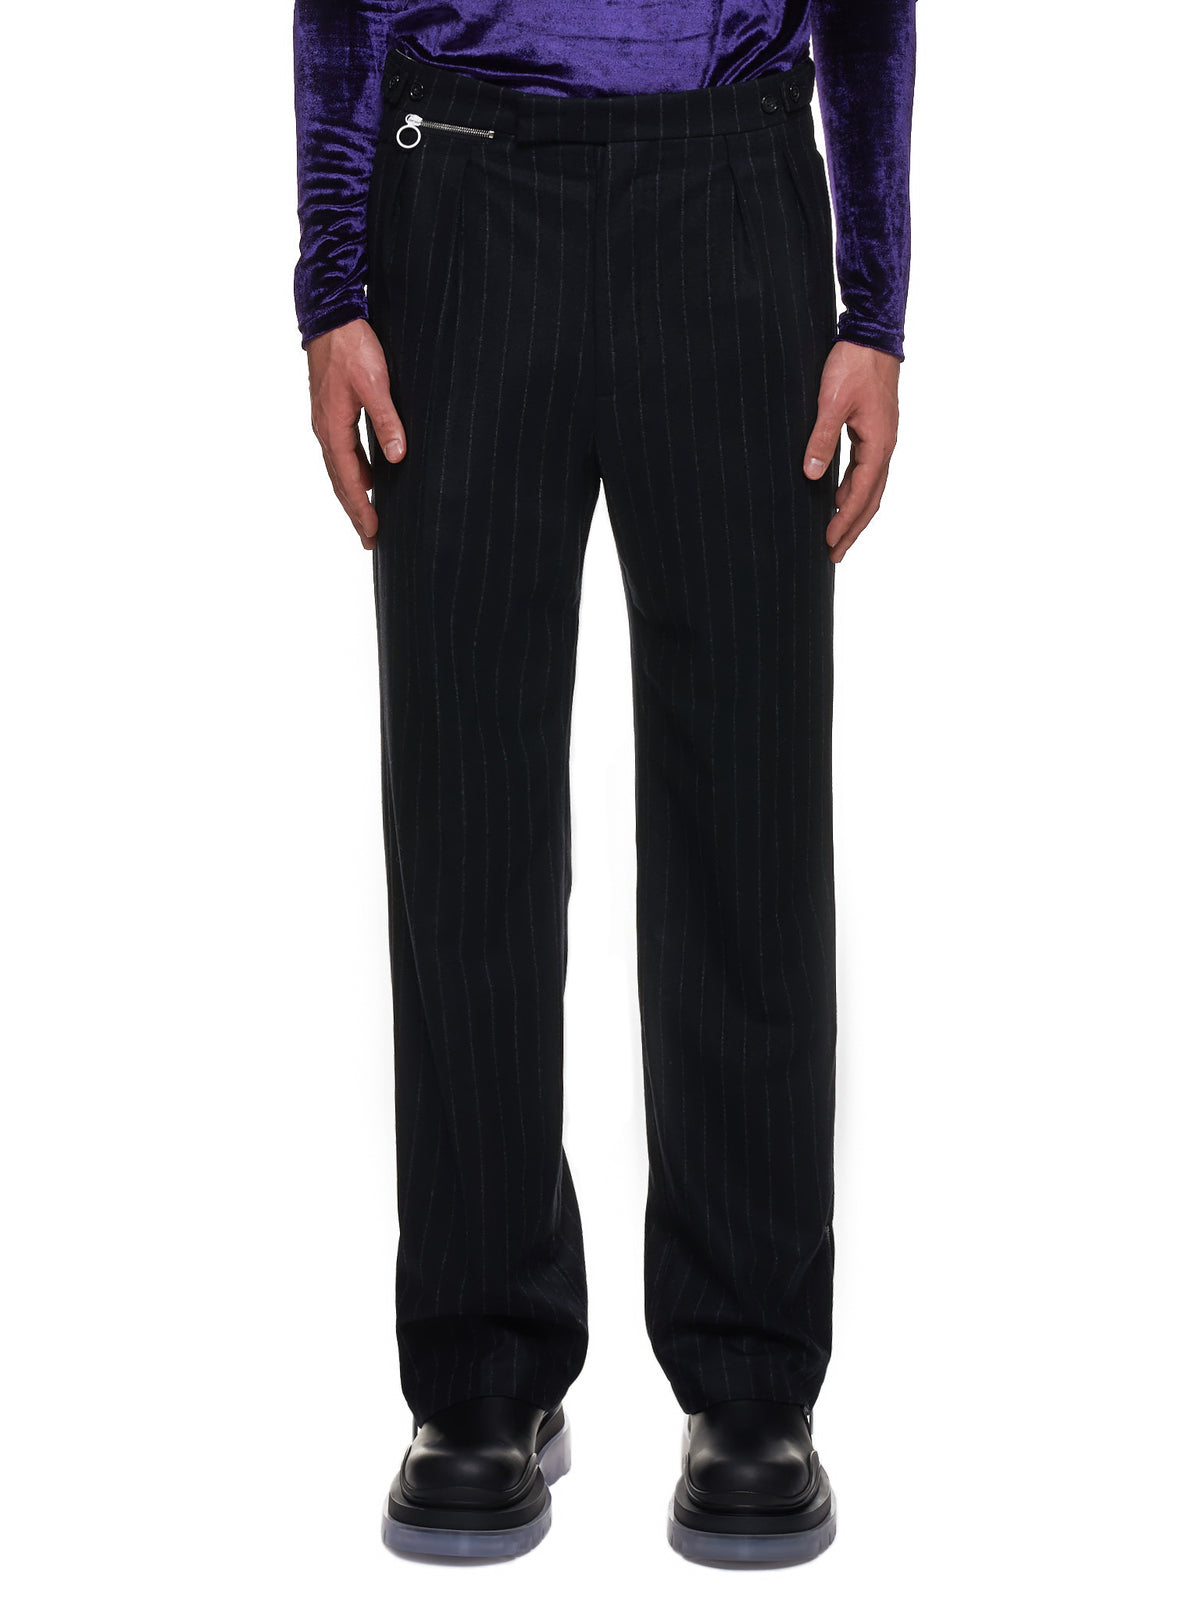 Pinstripe Ankle Zip-Up Trousers (202-343A-20001-BLACK-GREY)